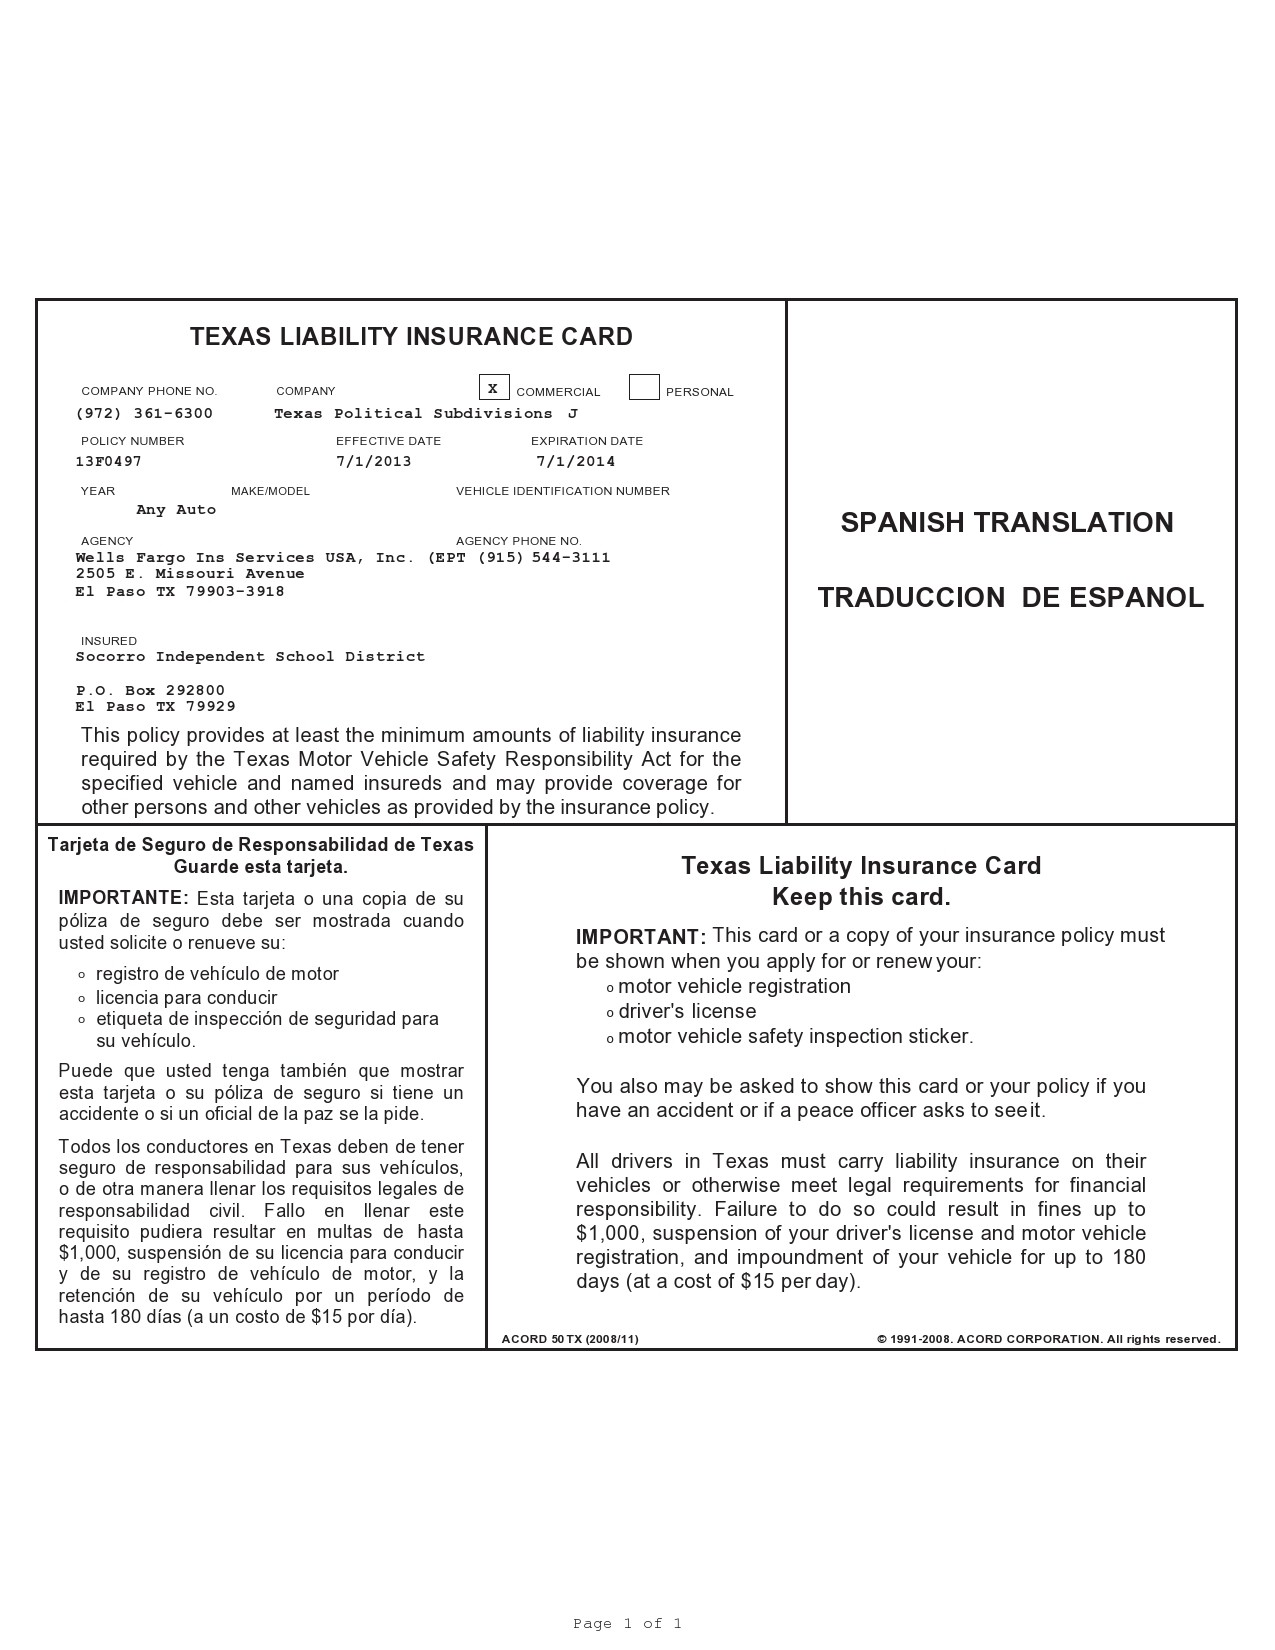 Fake Car Insurance Card In Fake Auto Insurance Card Template Download